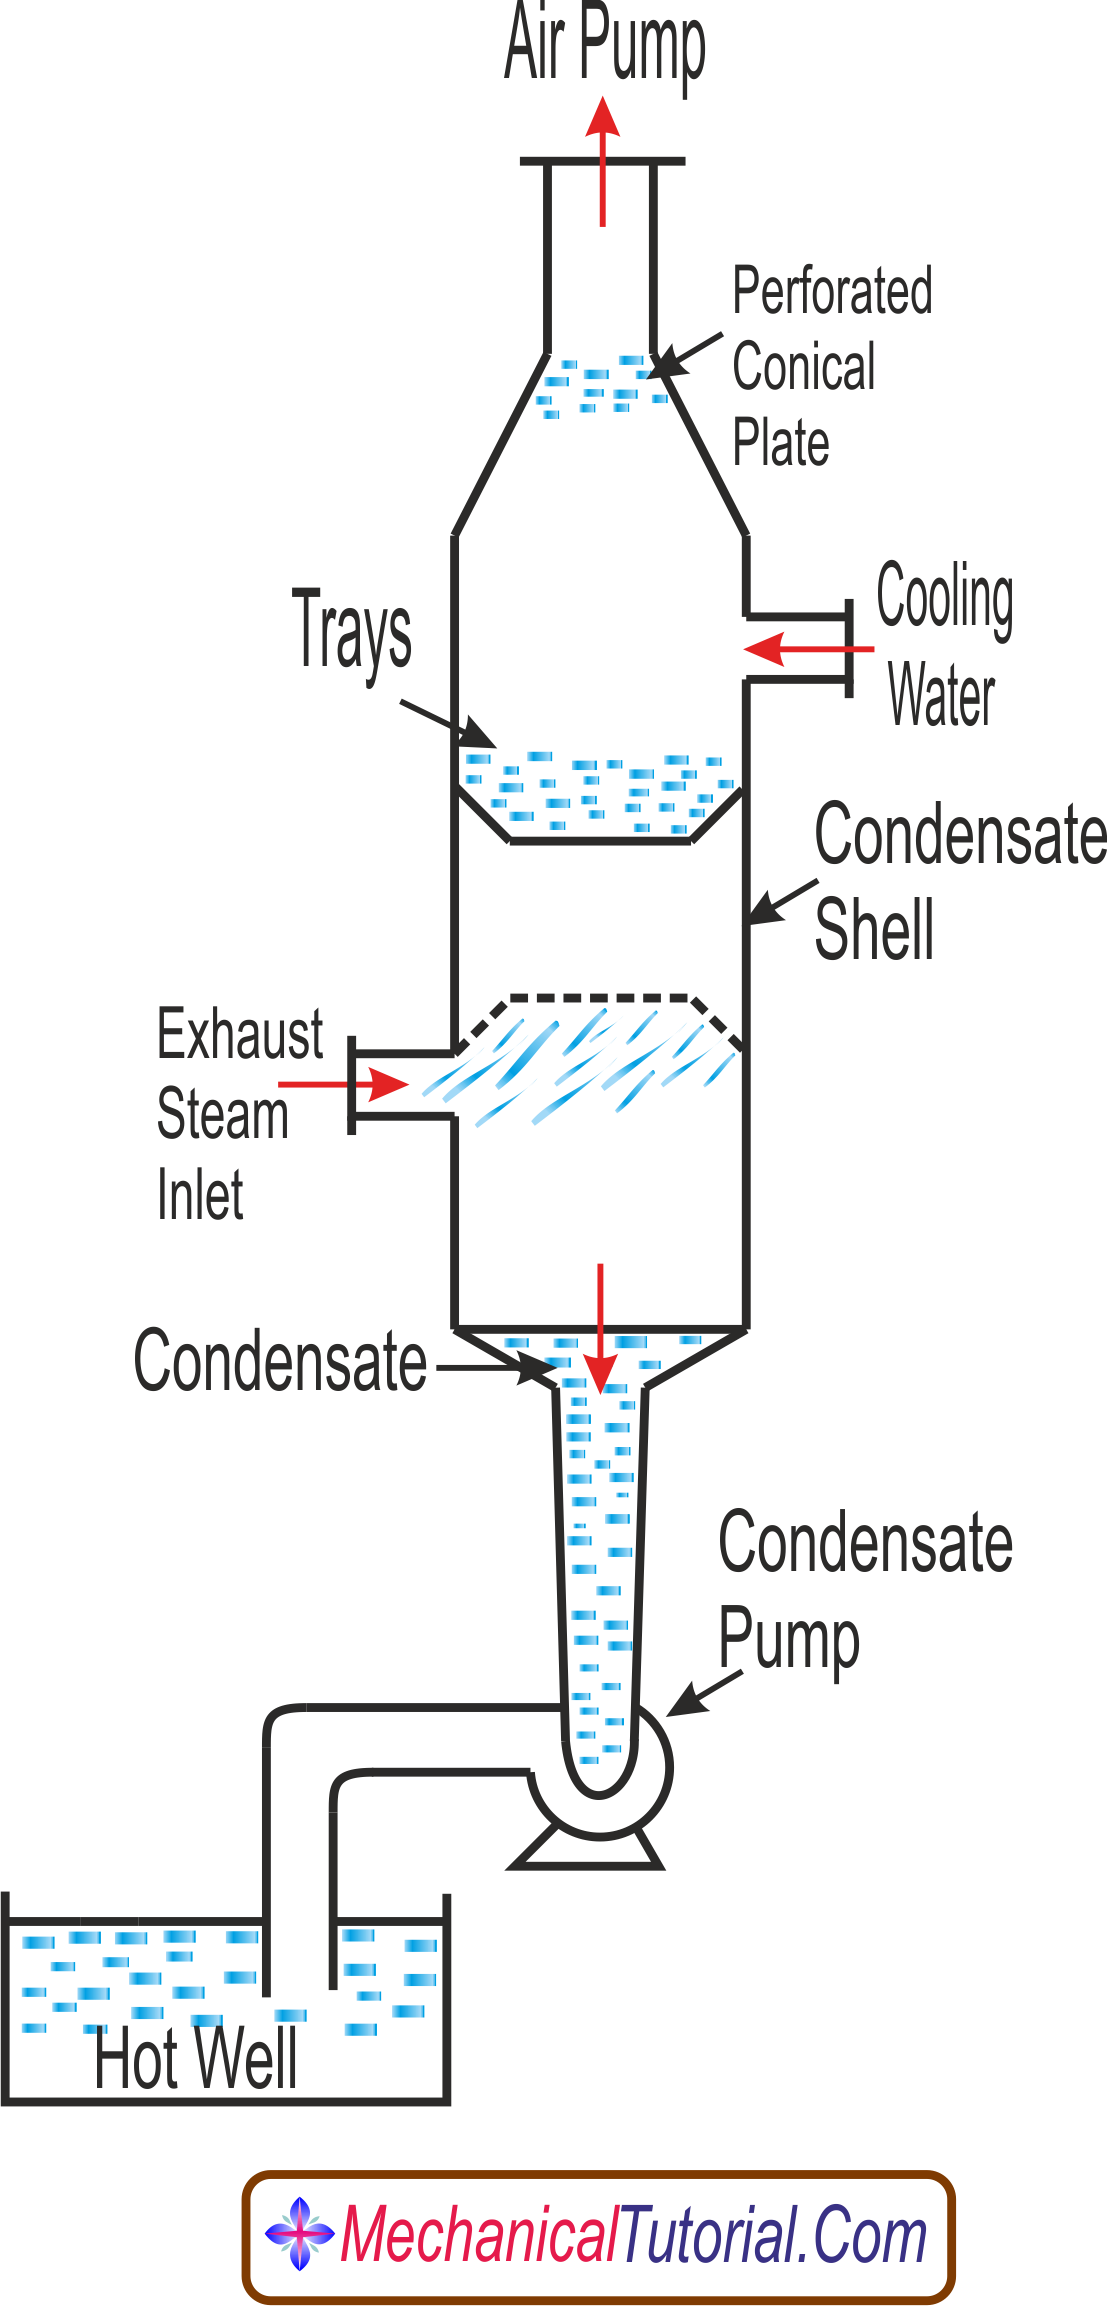 counter-flow or low-level jet condenser diagram